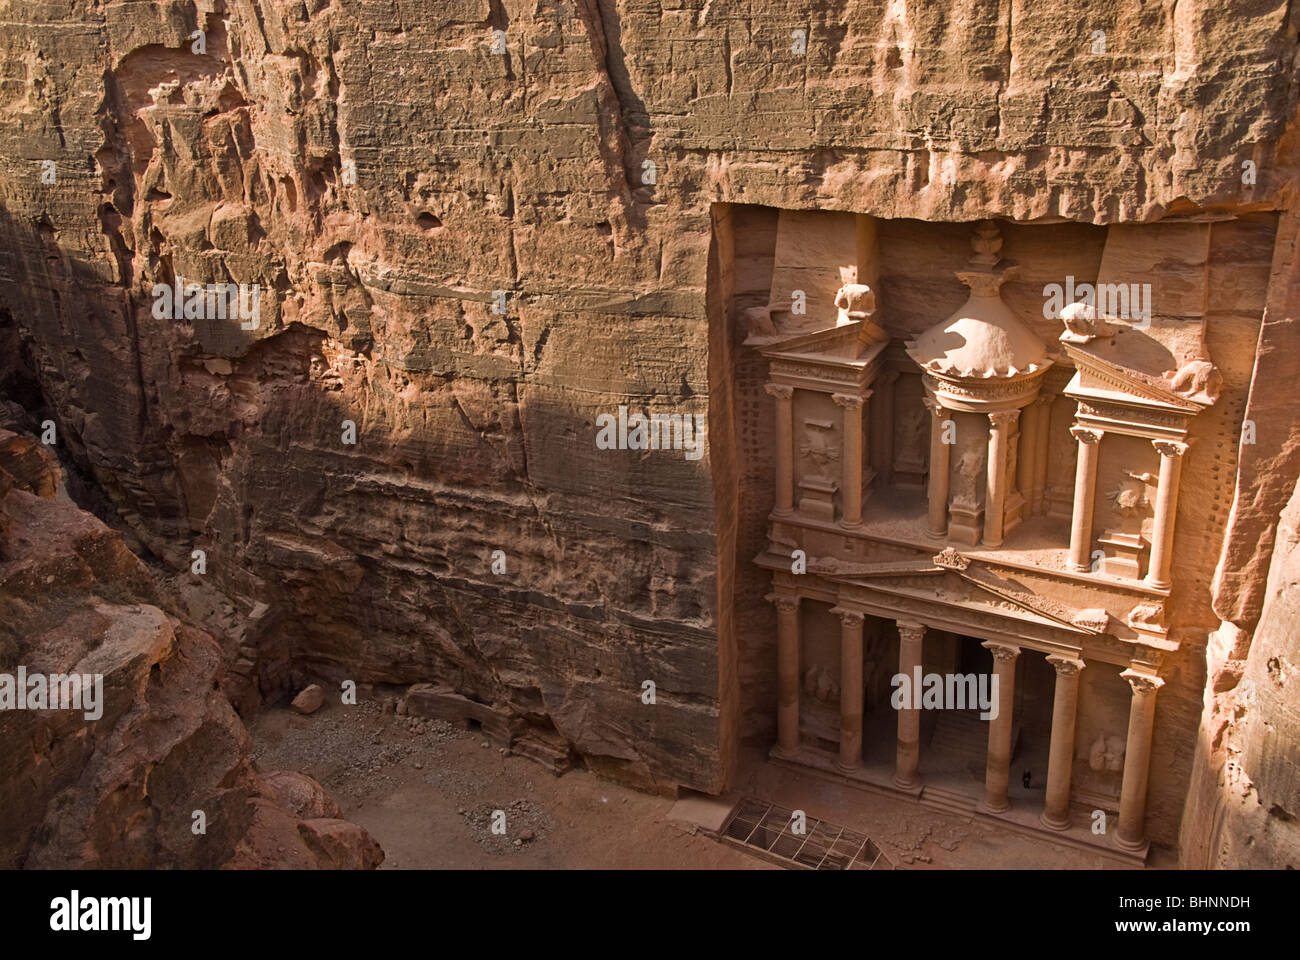 View of the Treasury from the top, Petra, jordan, Asia. - Stock Image